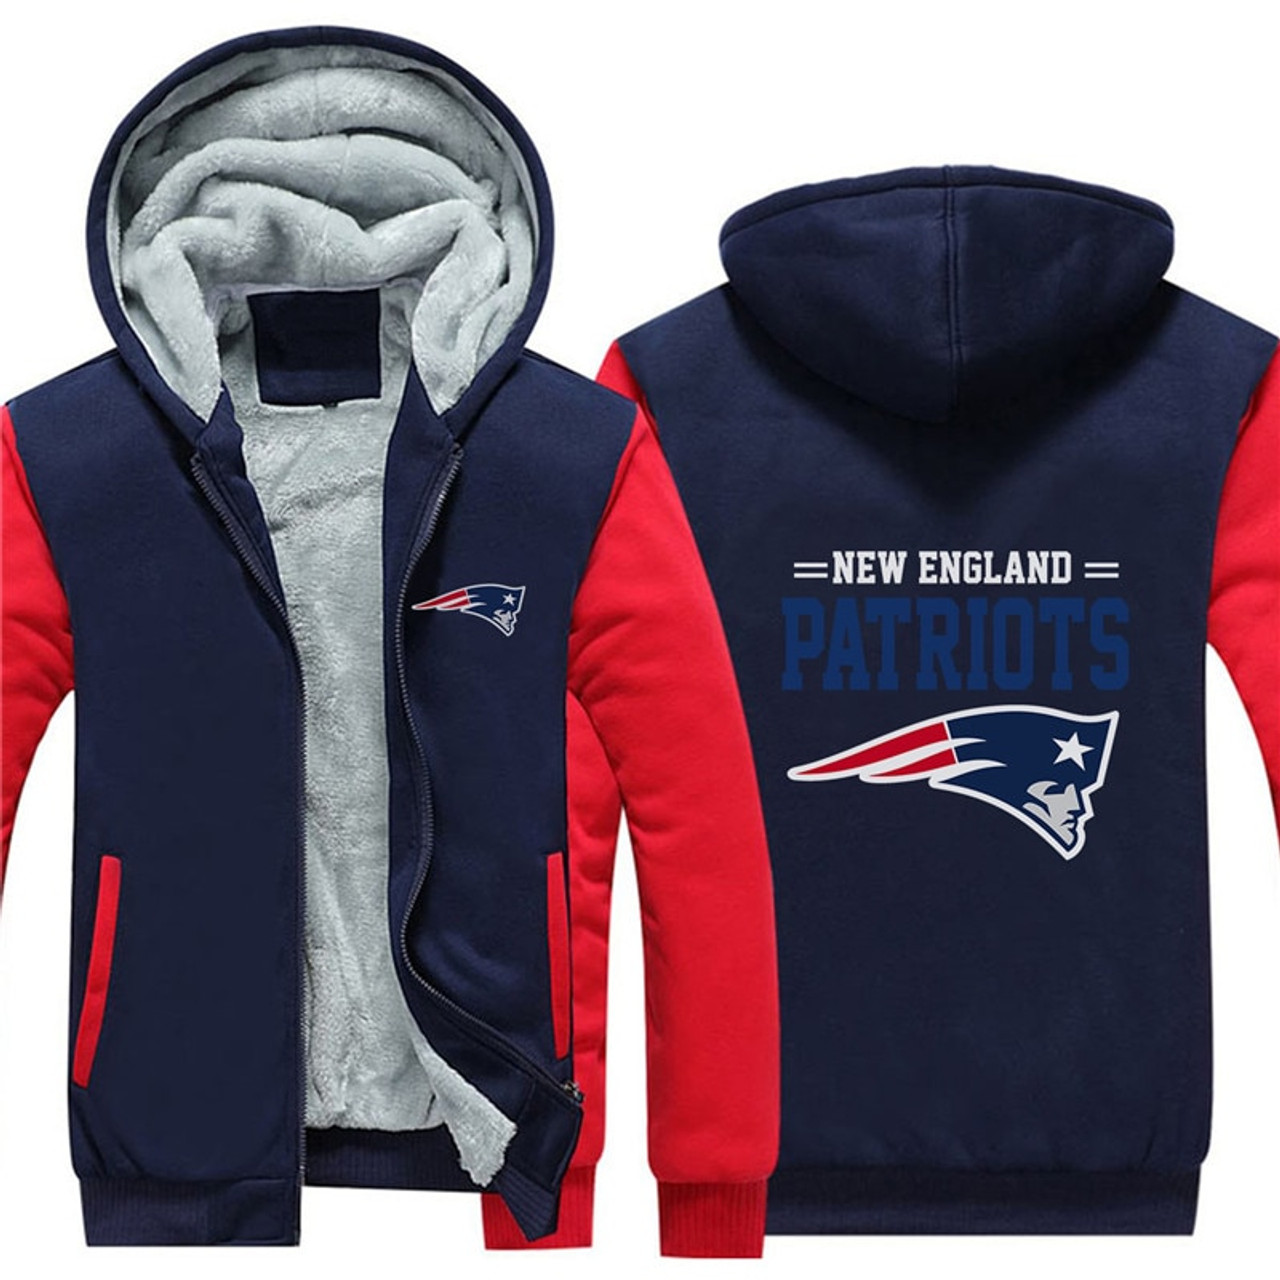 separation shoes 73889 4bd9b **(NEW-OFFICIALLY-LICENSED-N.F.L.NEW-ENGLAND-PATRIOTS/TRENDY-NEW-TWO-TONE-STYLE,FLEECE-LINED-TEAM-JACKETS/3-D-CUSTOM-DETAILED-GRAPHIC-PRINTED-DOUBLE-S...